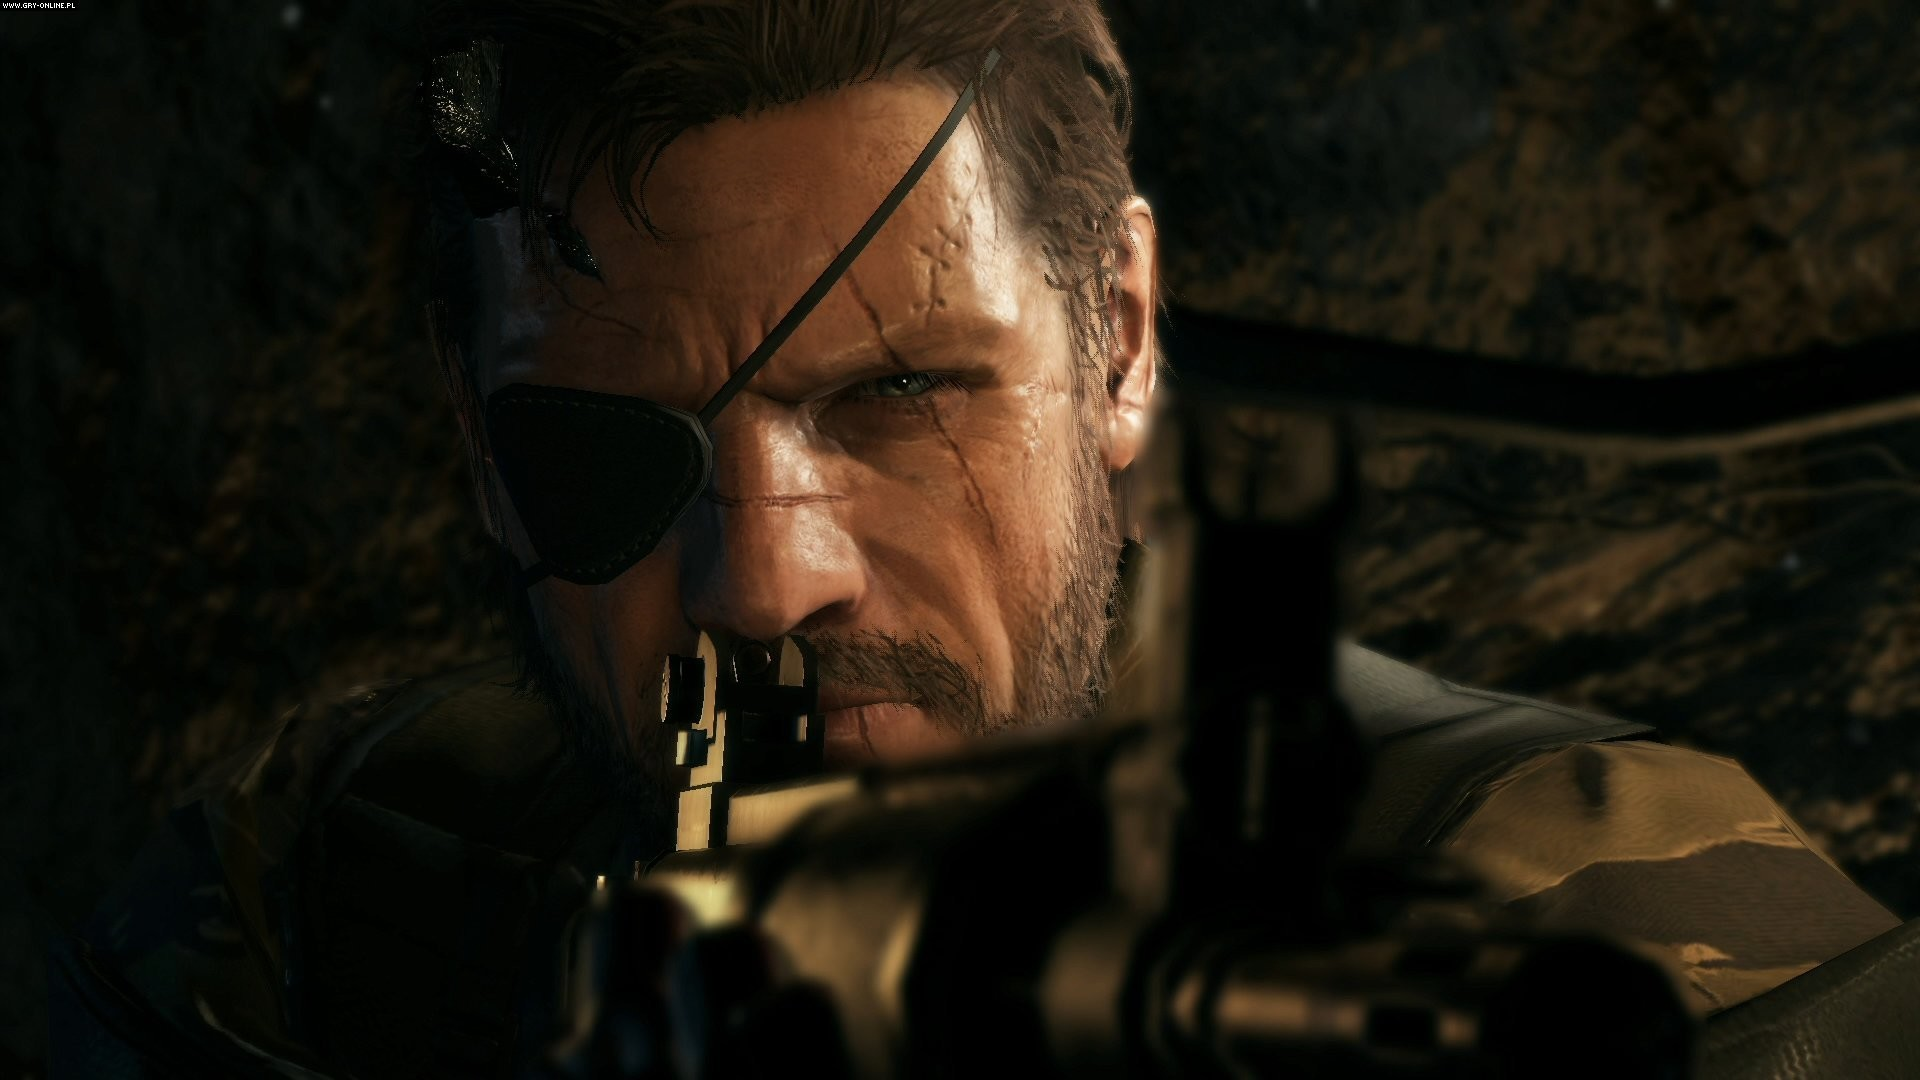 Metal Gear Solid V The Phantom Pain Game Wallpapers. 011. 012. 008. 009.  010. 002